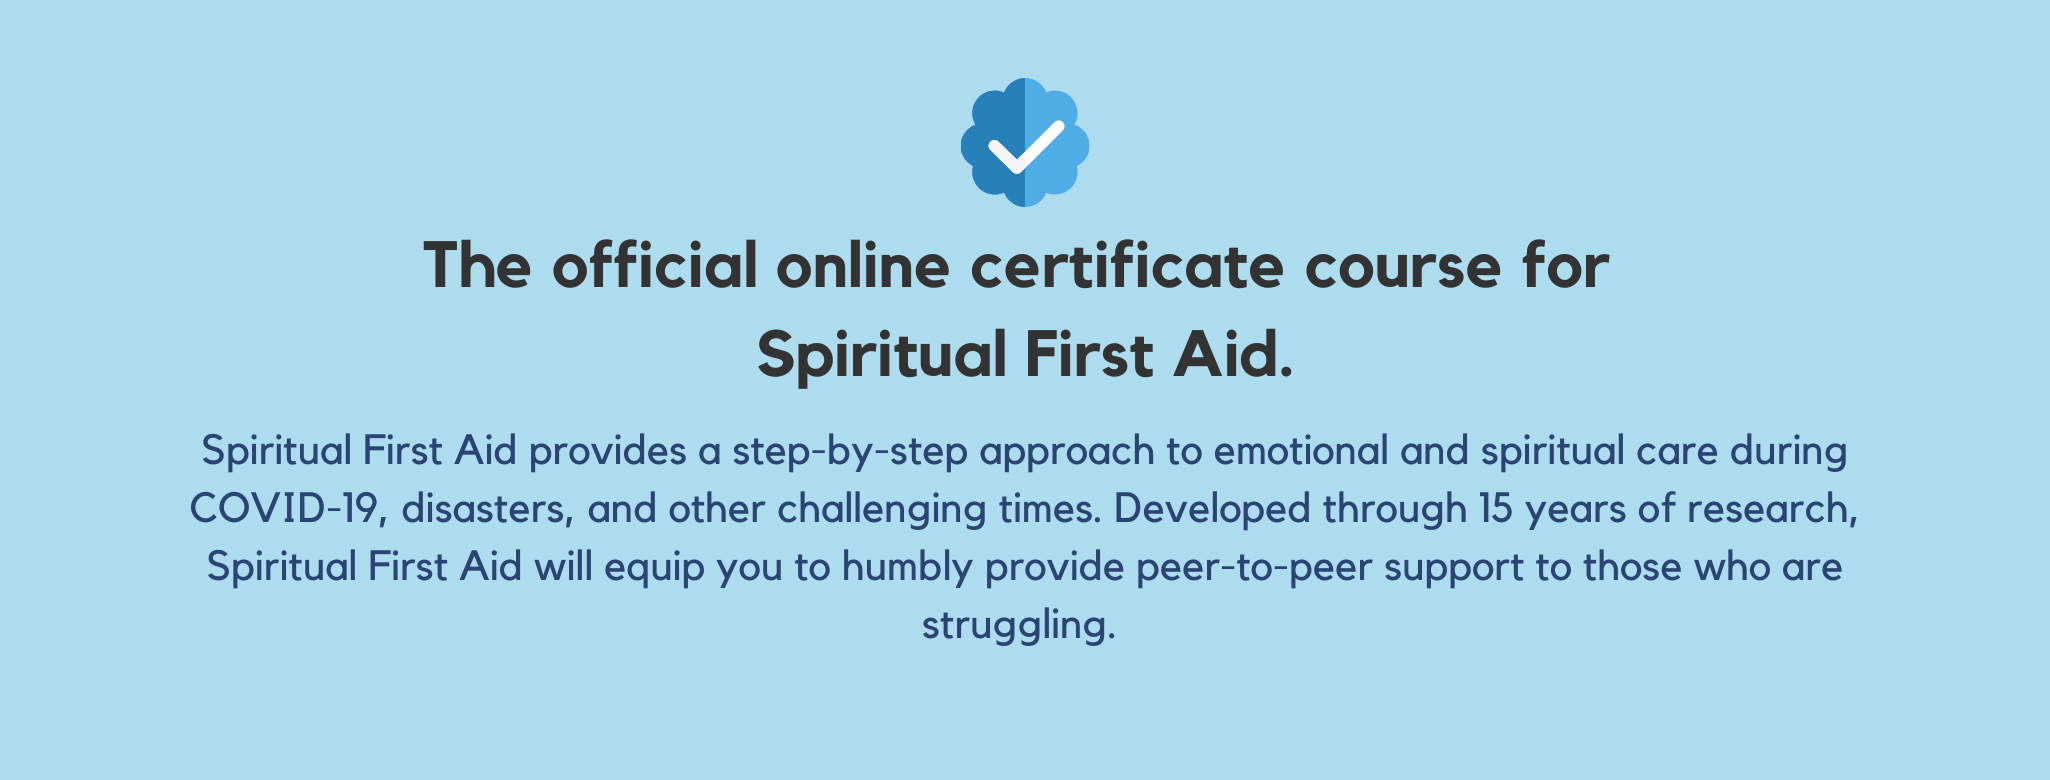 The official online certificate course for Spiritual First Aid. Spiritual First Aid provides a step-by-step approach to emotional and spiritual care during COVID-19, disasters, and other challenging times. Developed through 15 years of research, Spiritual First Aid will equip you to humbly provide peer-to-peer support to those who are struggling.